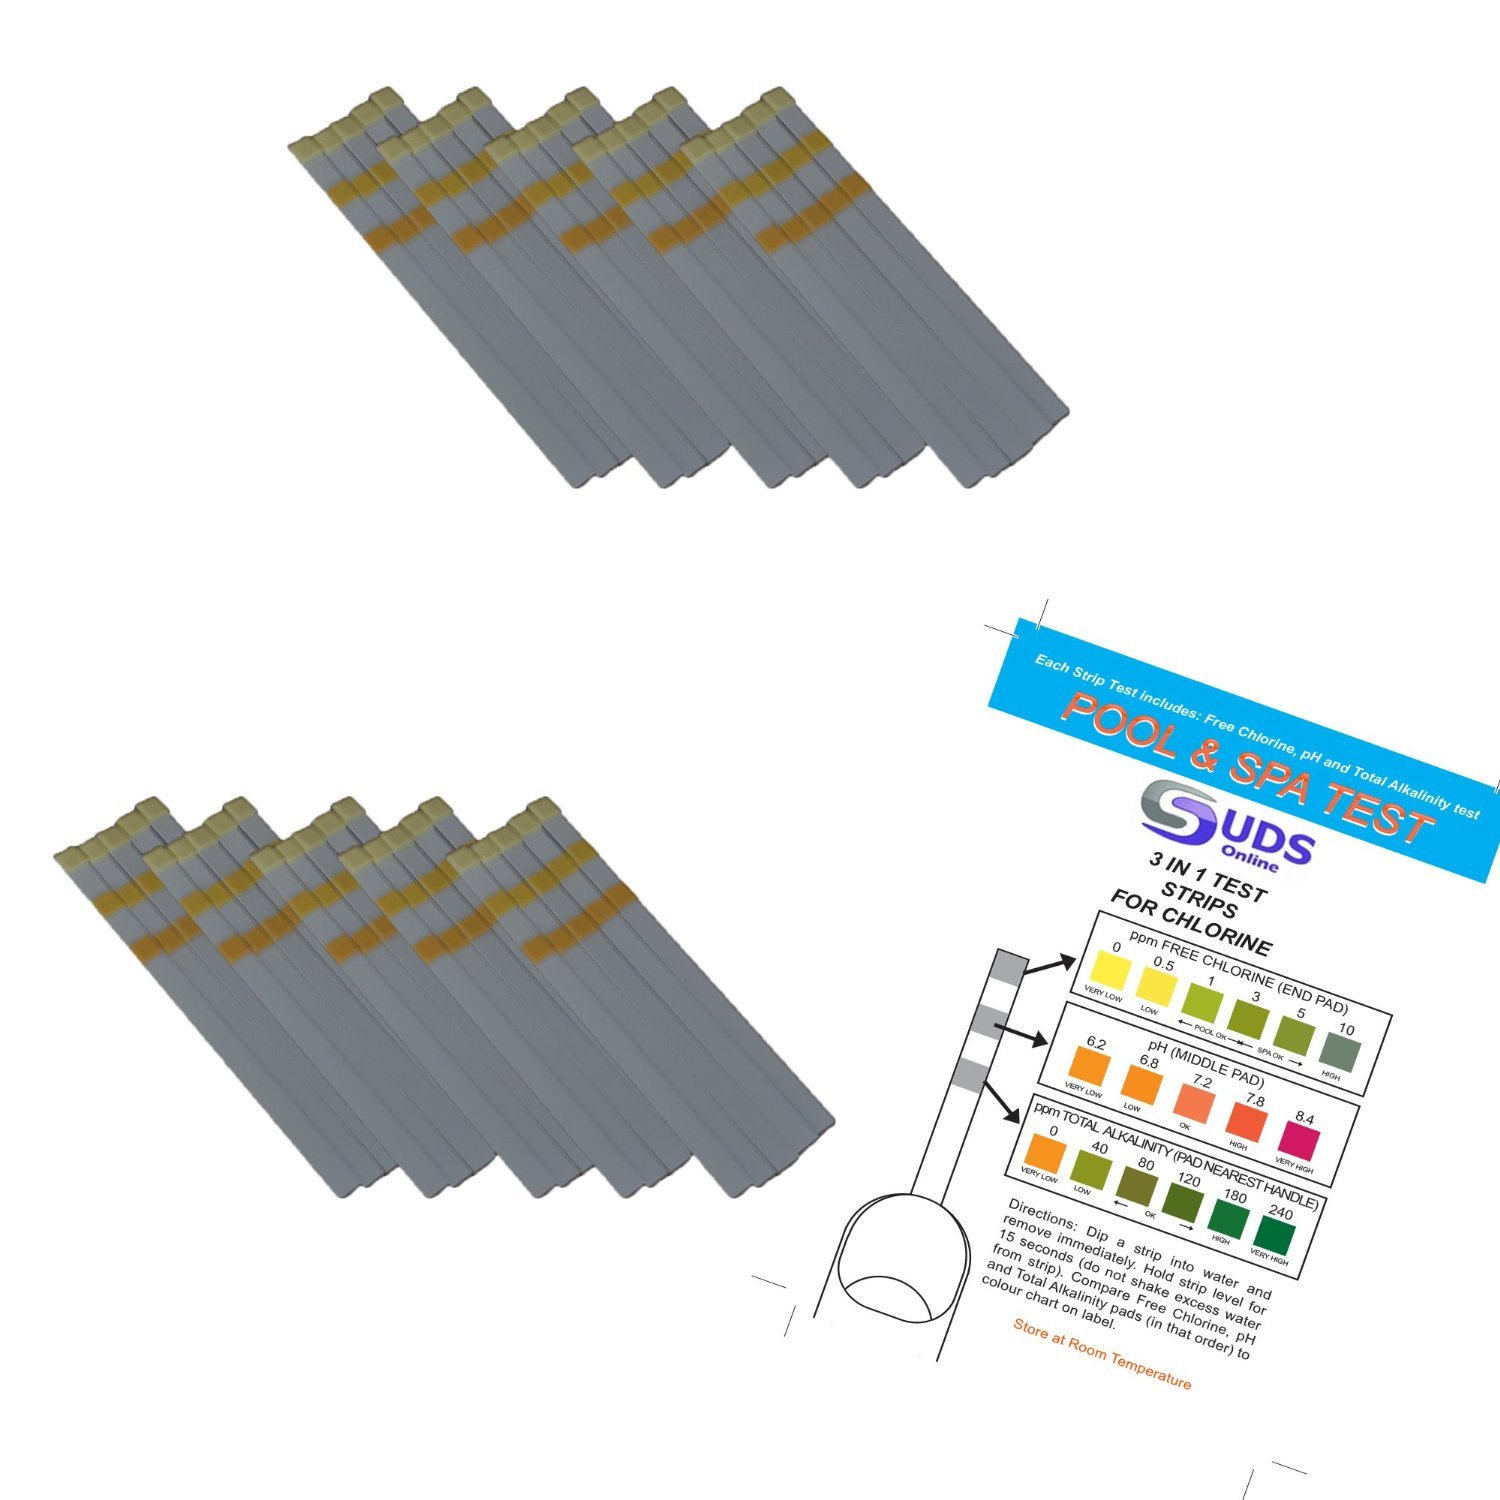 100 x 3 in 1 - Chlorine Test Strips for Swimming Pools Spas & Hot Tubs - Free Chlorine, pH & TA